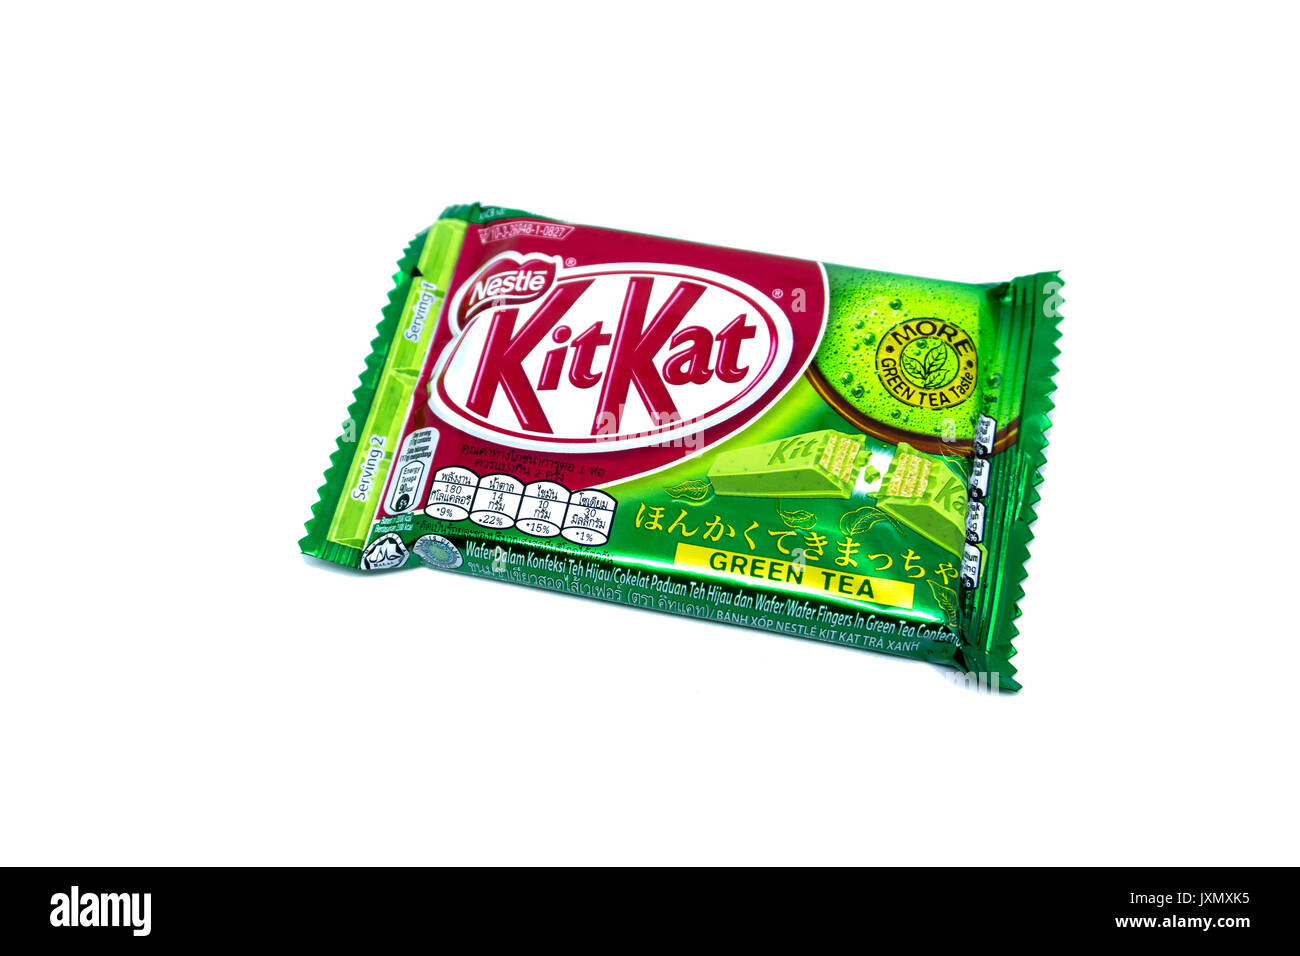 Kota Kinabalu, Malaysia - August 16, 2017: Kit Kat Green Tea flavored isolated on white background. Kit Kat bars are produced by Nestle. Brand Kit Kat - Stock Image